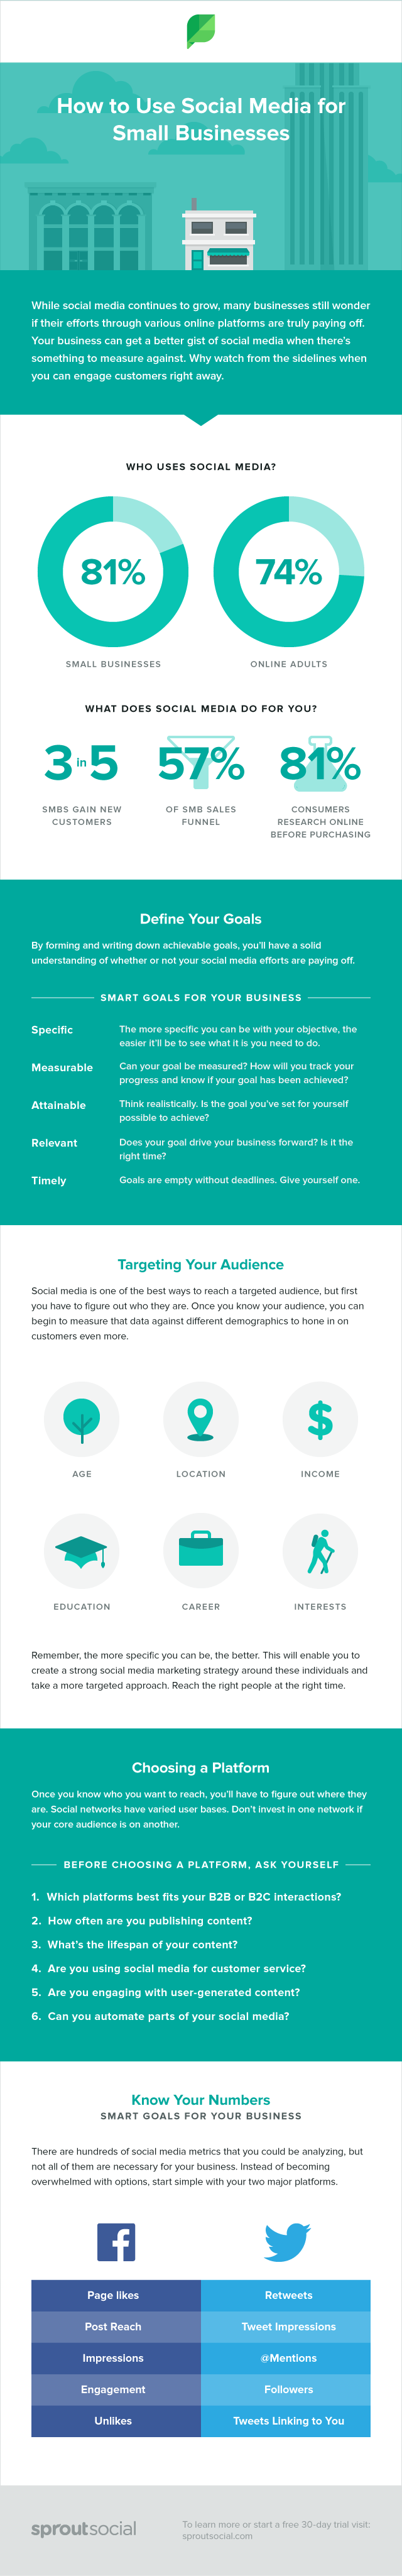 Small Business for Social Media Infographic